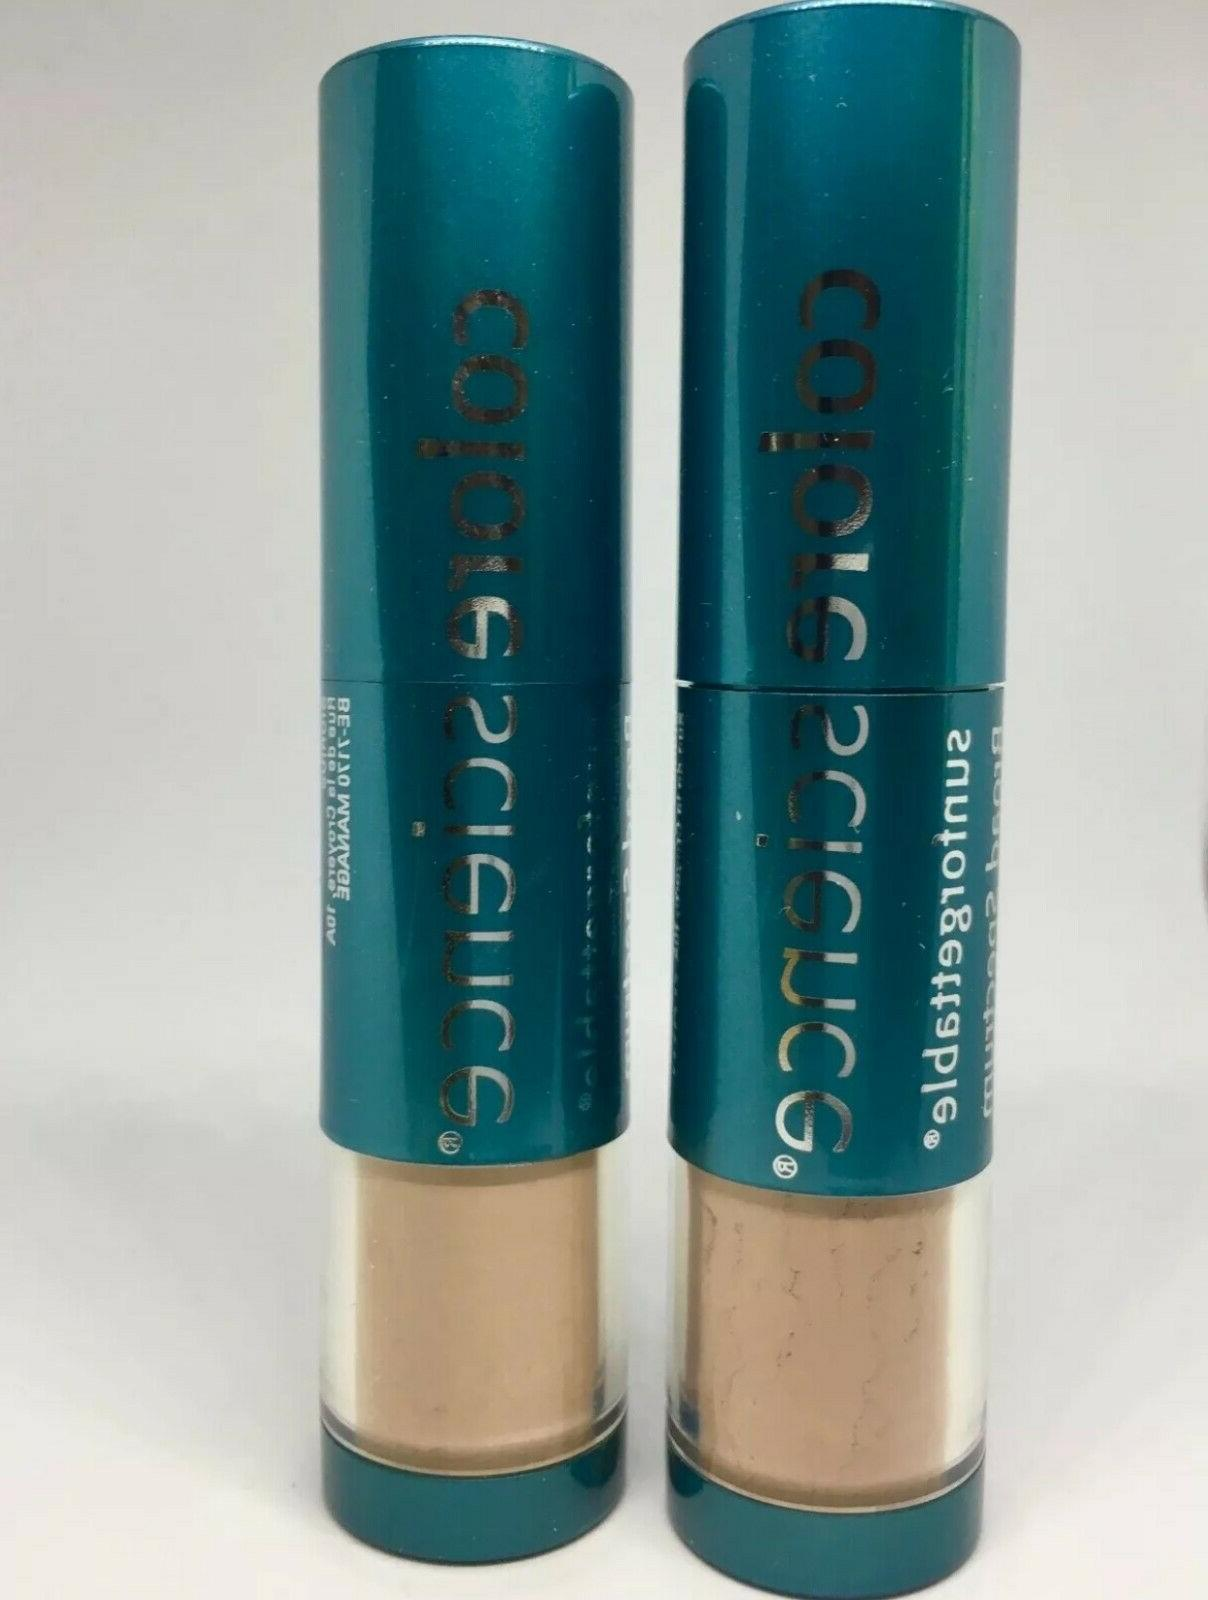 !SALE! Sunforgettable Colorescience Brush-on Sunscreen Mineral